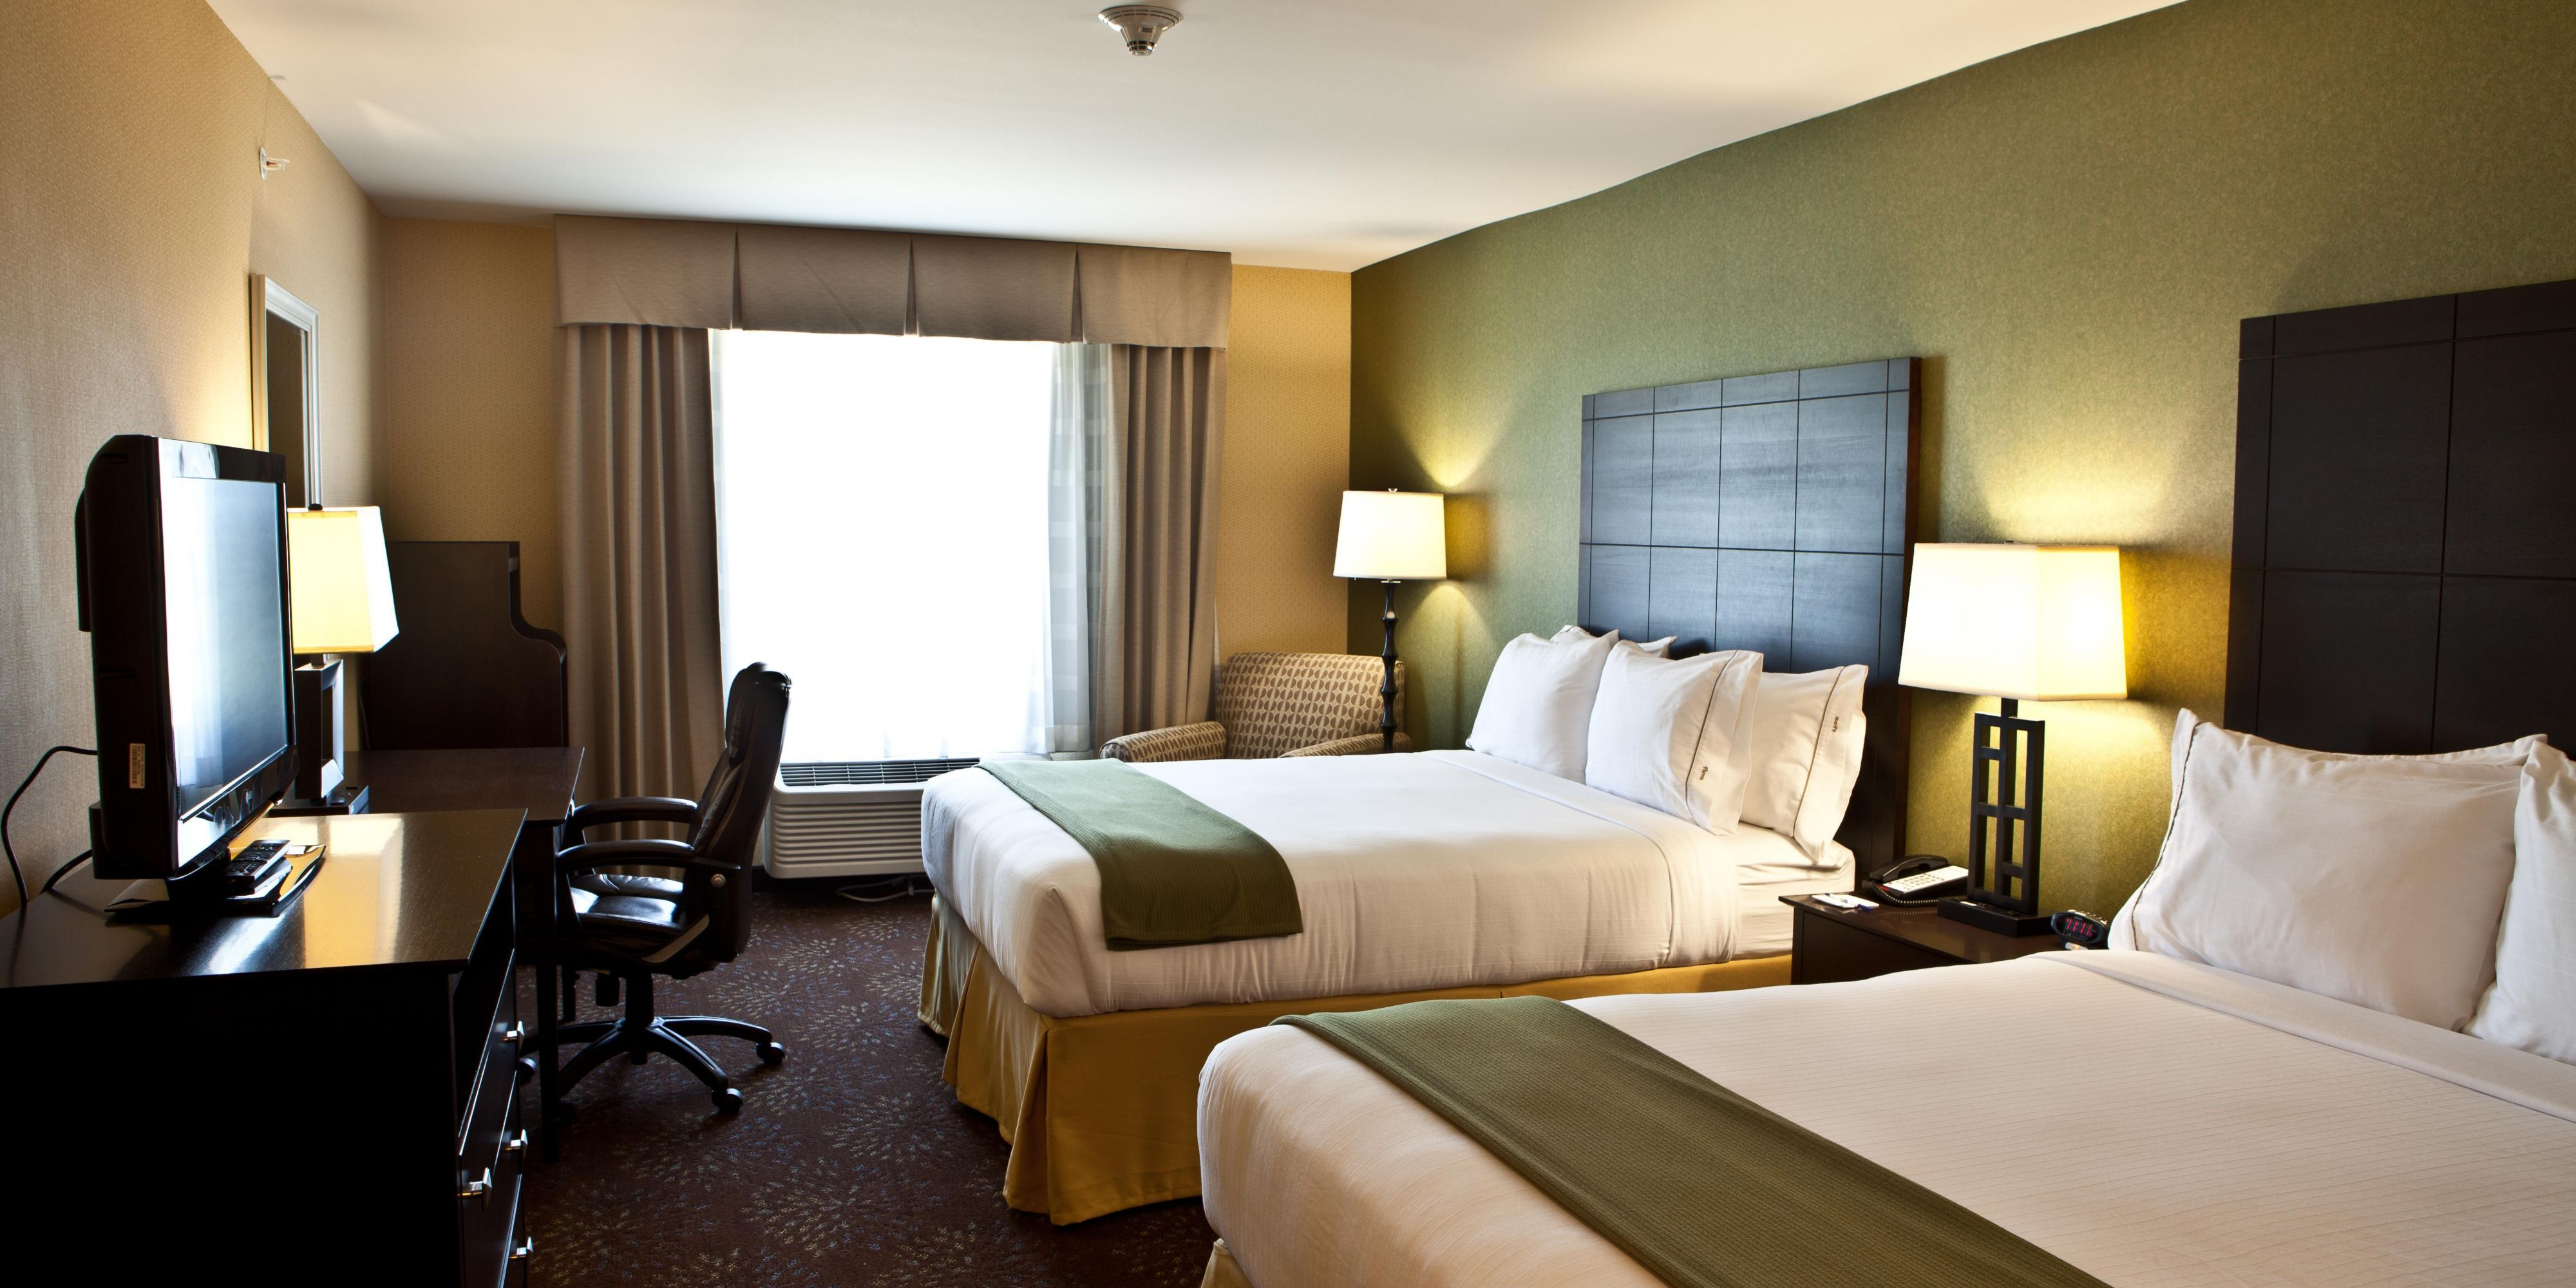 orleans accommodations clsc quarter king msyjw marriott new in french suites suite and bedroom guest room hotels executive hor jw hotel rooms